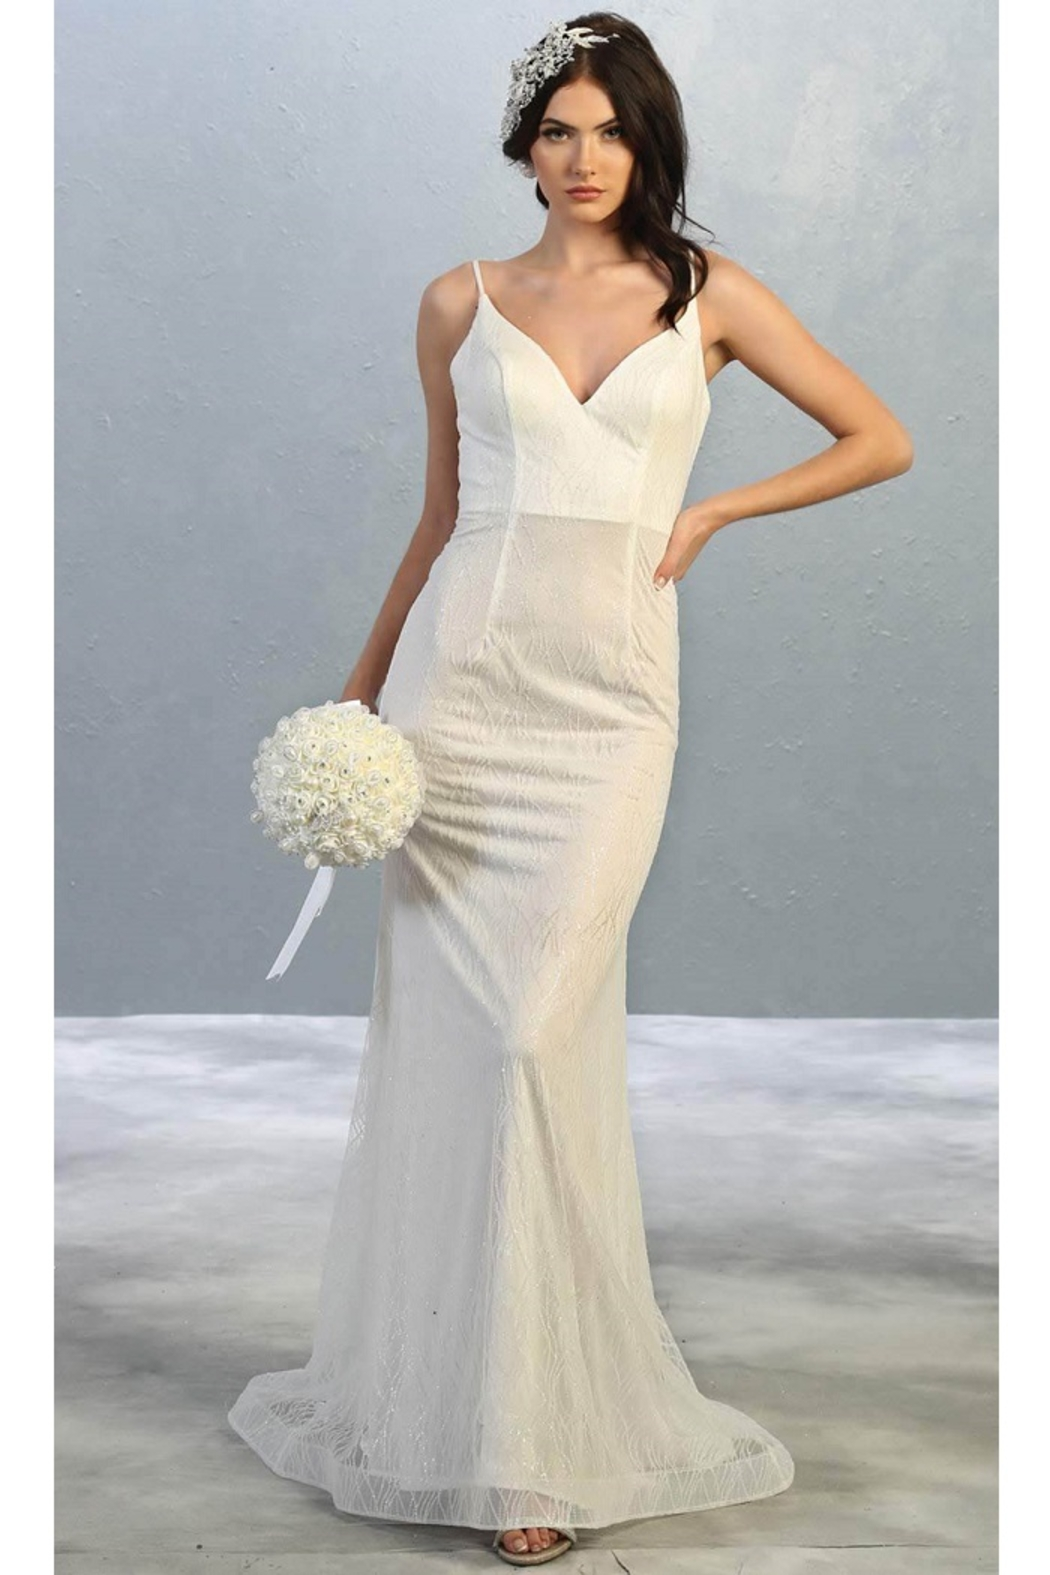 May Queen  Ivory Glitter Fit & Flare Bridal Gown - Main Image